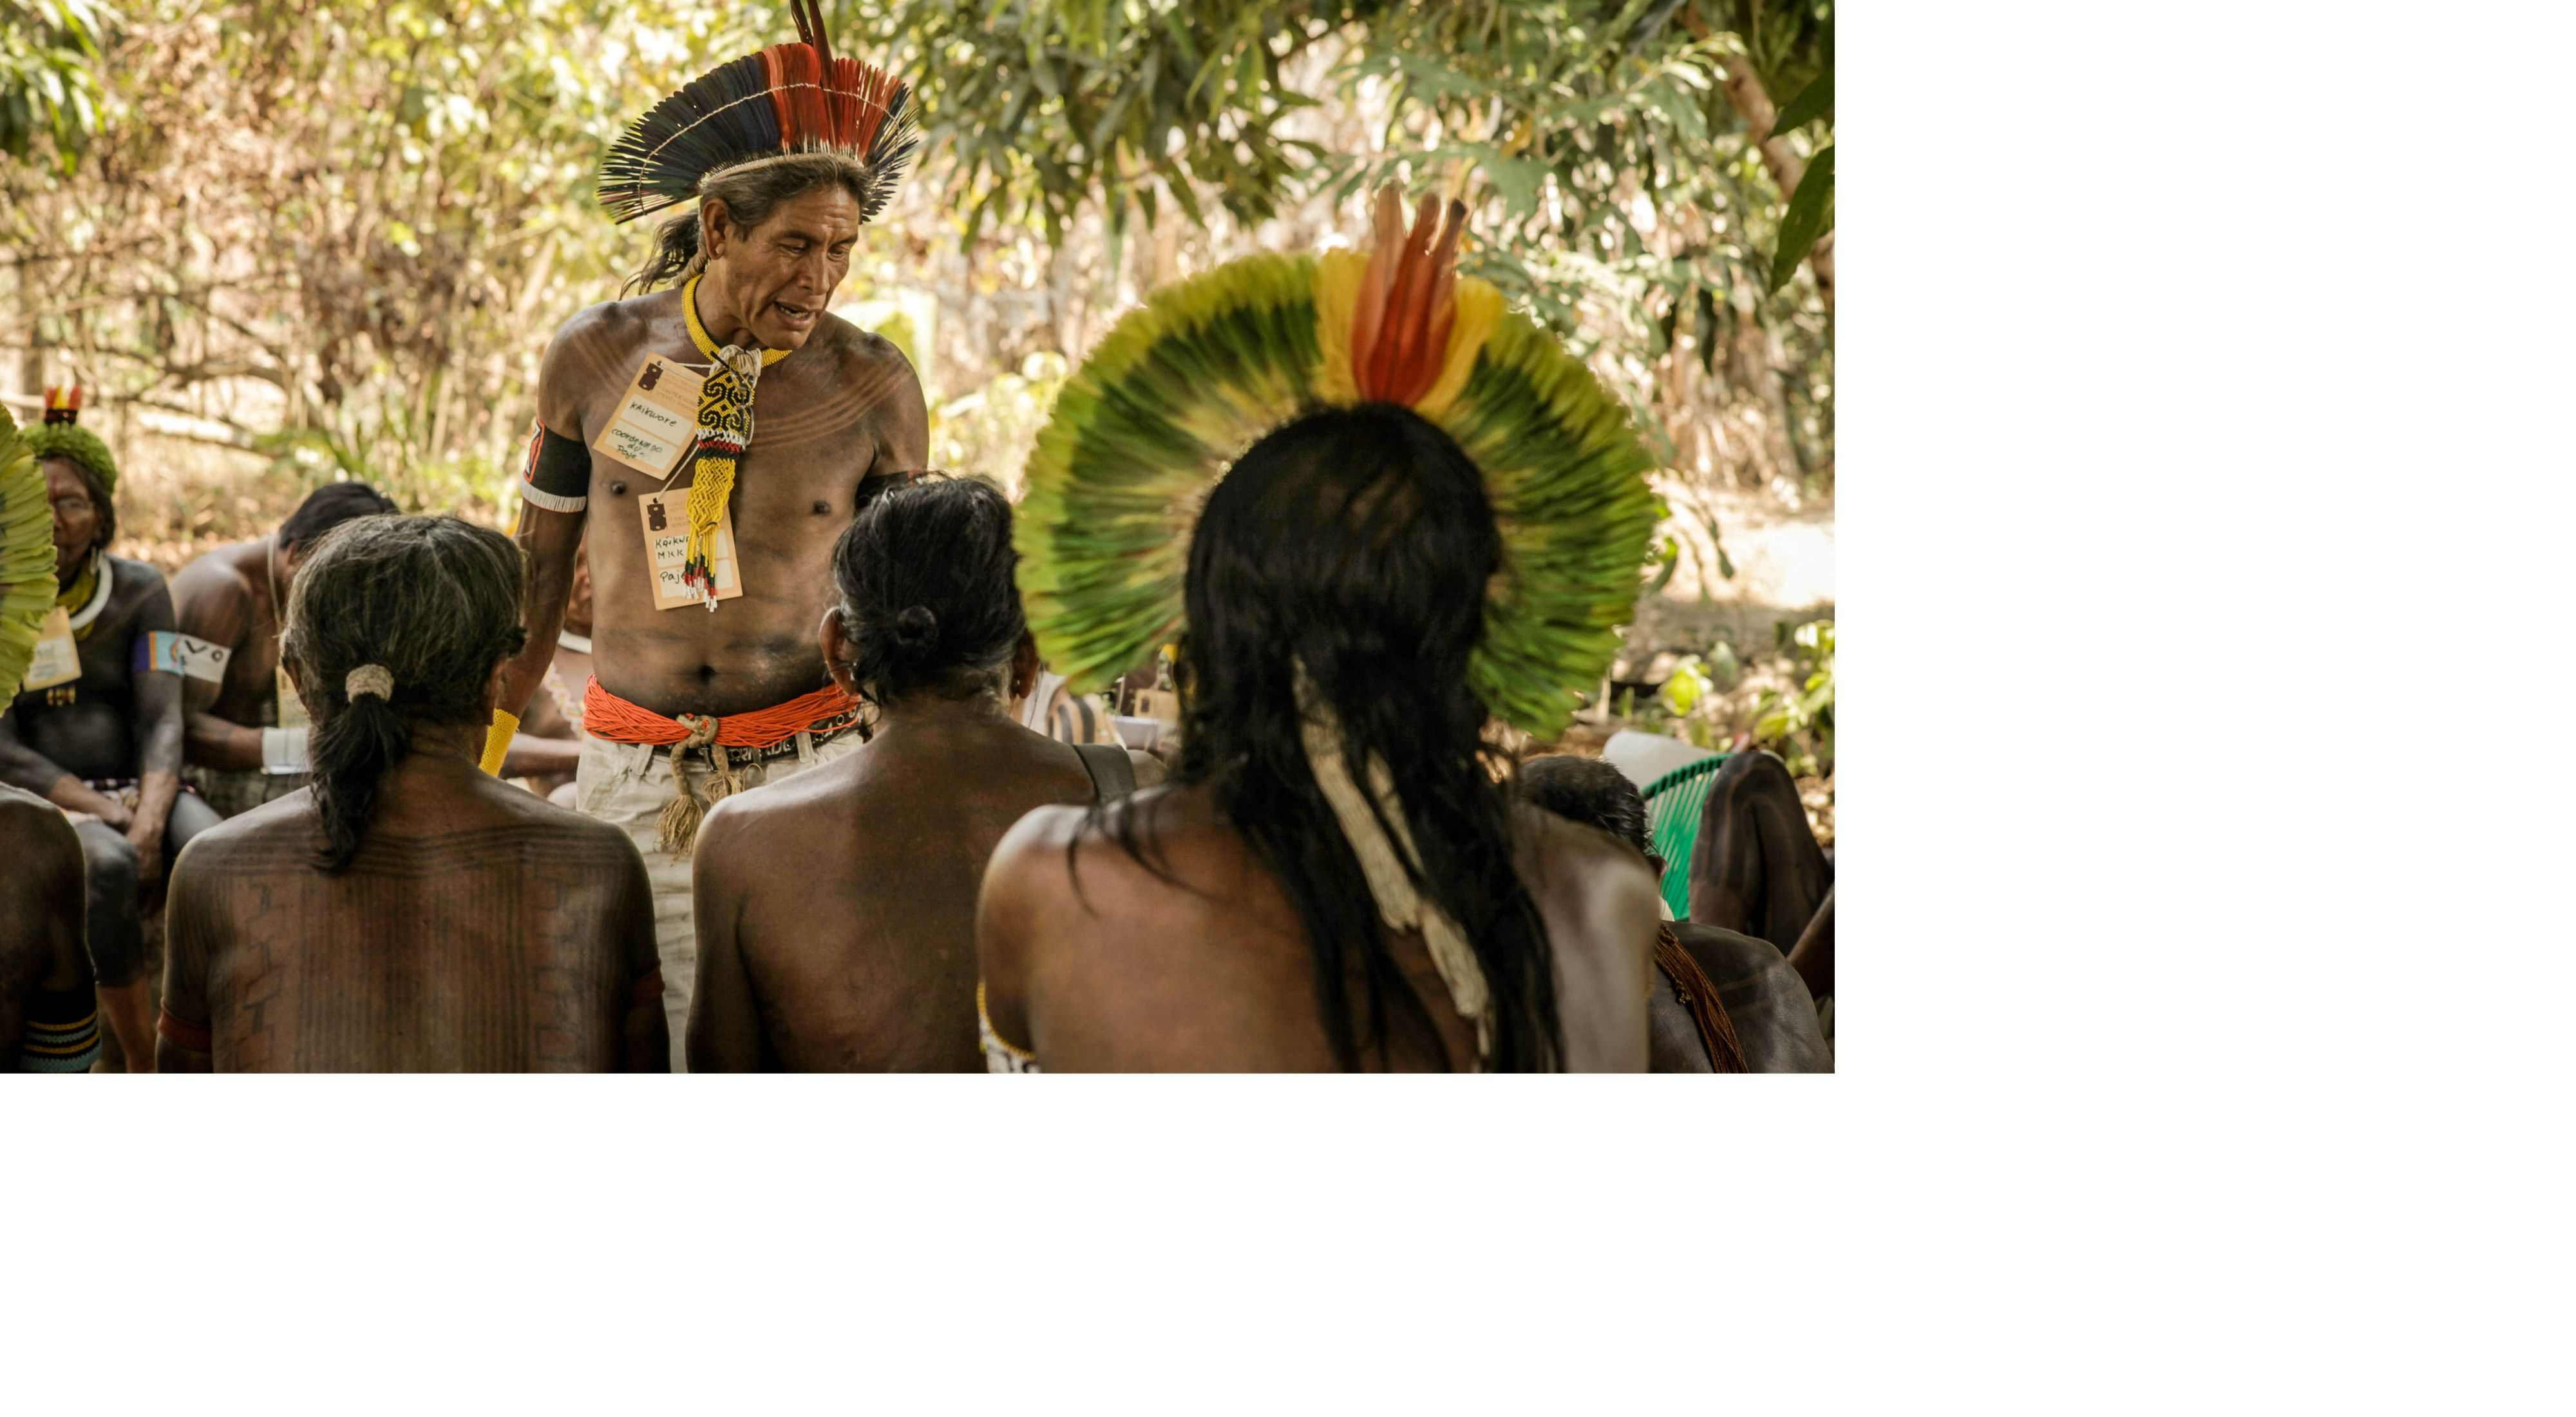 Indigenous People at the Kokraimoro village, in São Félix do Xingu, on the Brazilian Amazon.